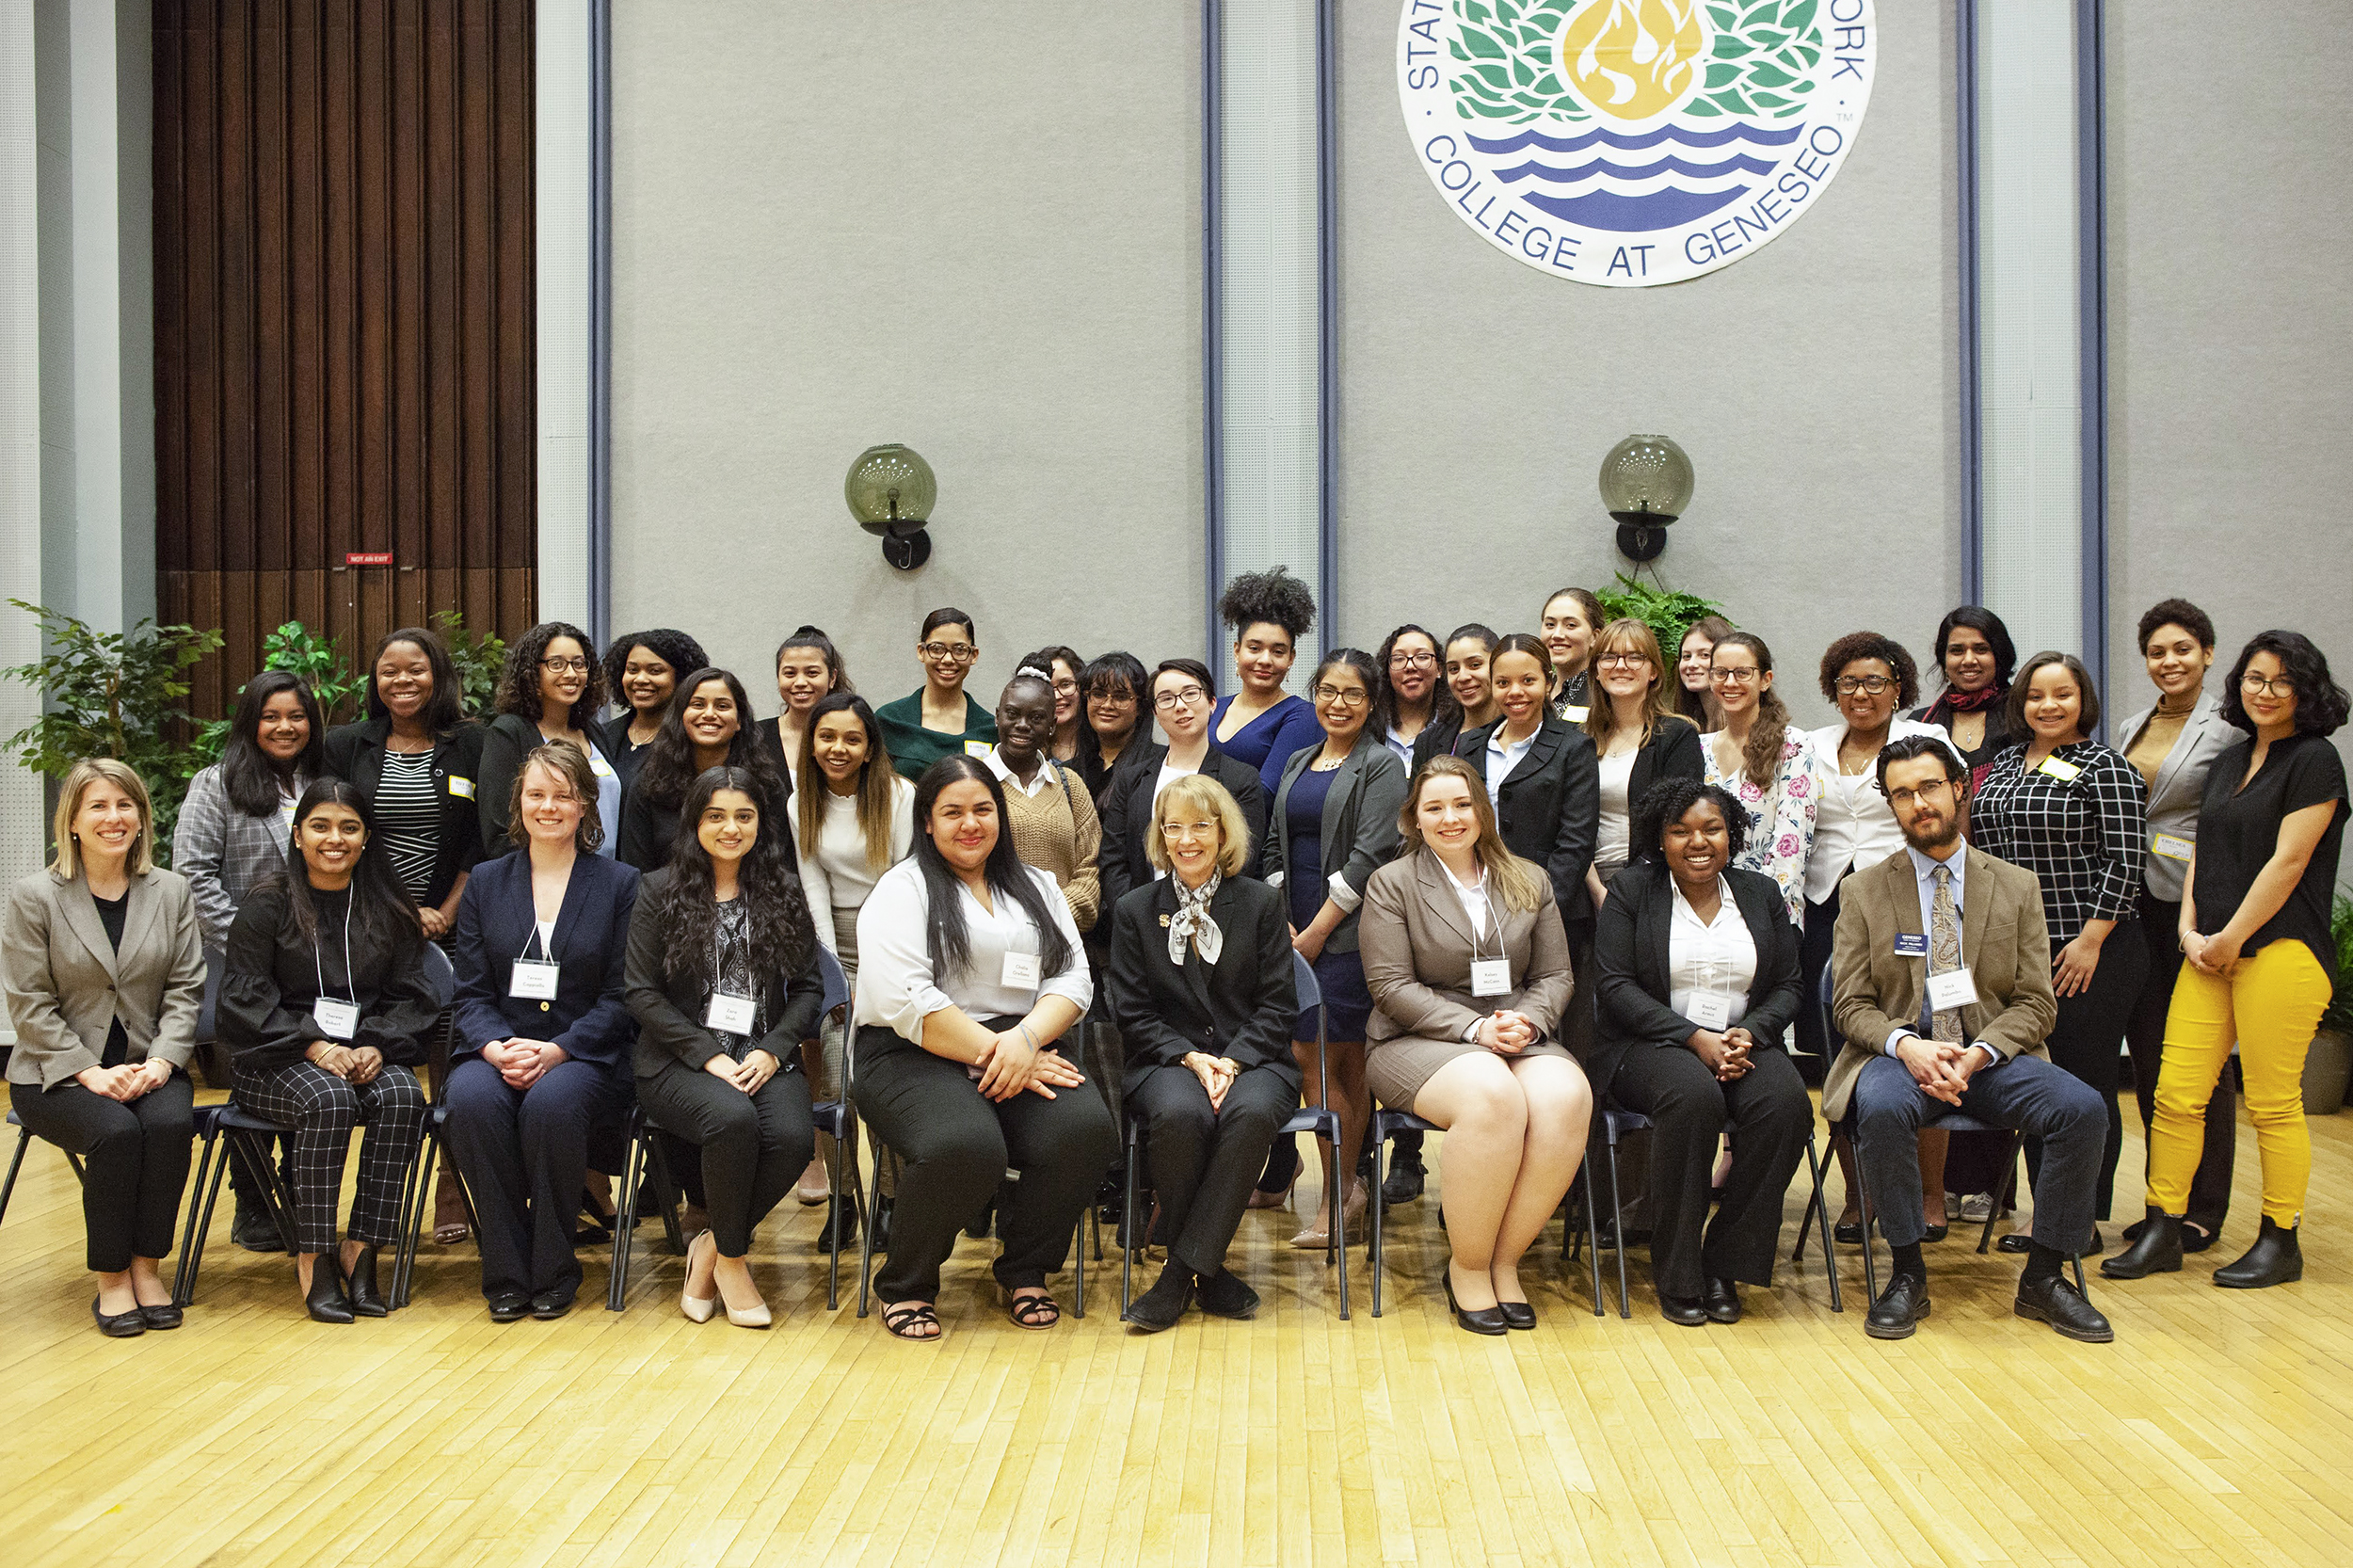 Held by the Women's Leadership Institute, The Women in Leadership Conference Dinner (pictured above) took place on March 6 in the College Union Ballroom. WLI aims to give women valuable leadership and workforce skills in a safe environment (Udeshi Seneviratne/photo editor).